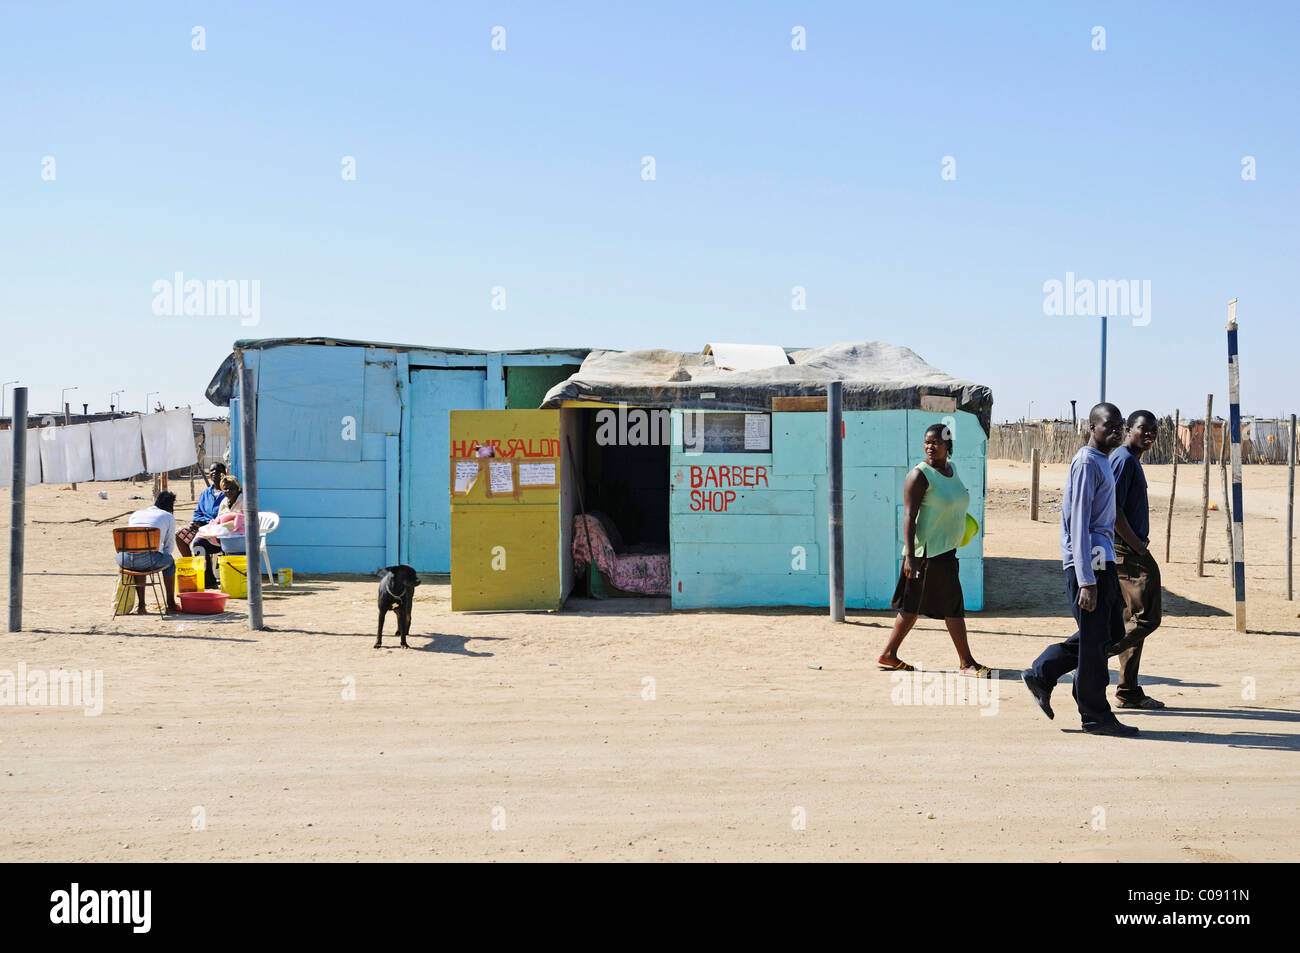 Barber shop in the Mondesa township, Swakopmund town, Namibia, Africa - Stock Image